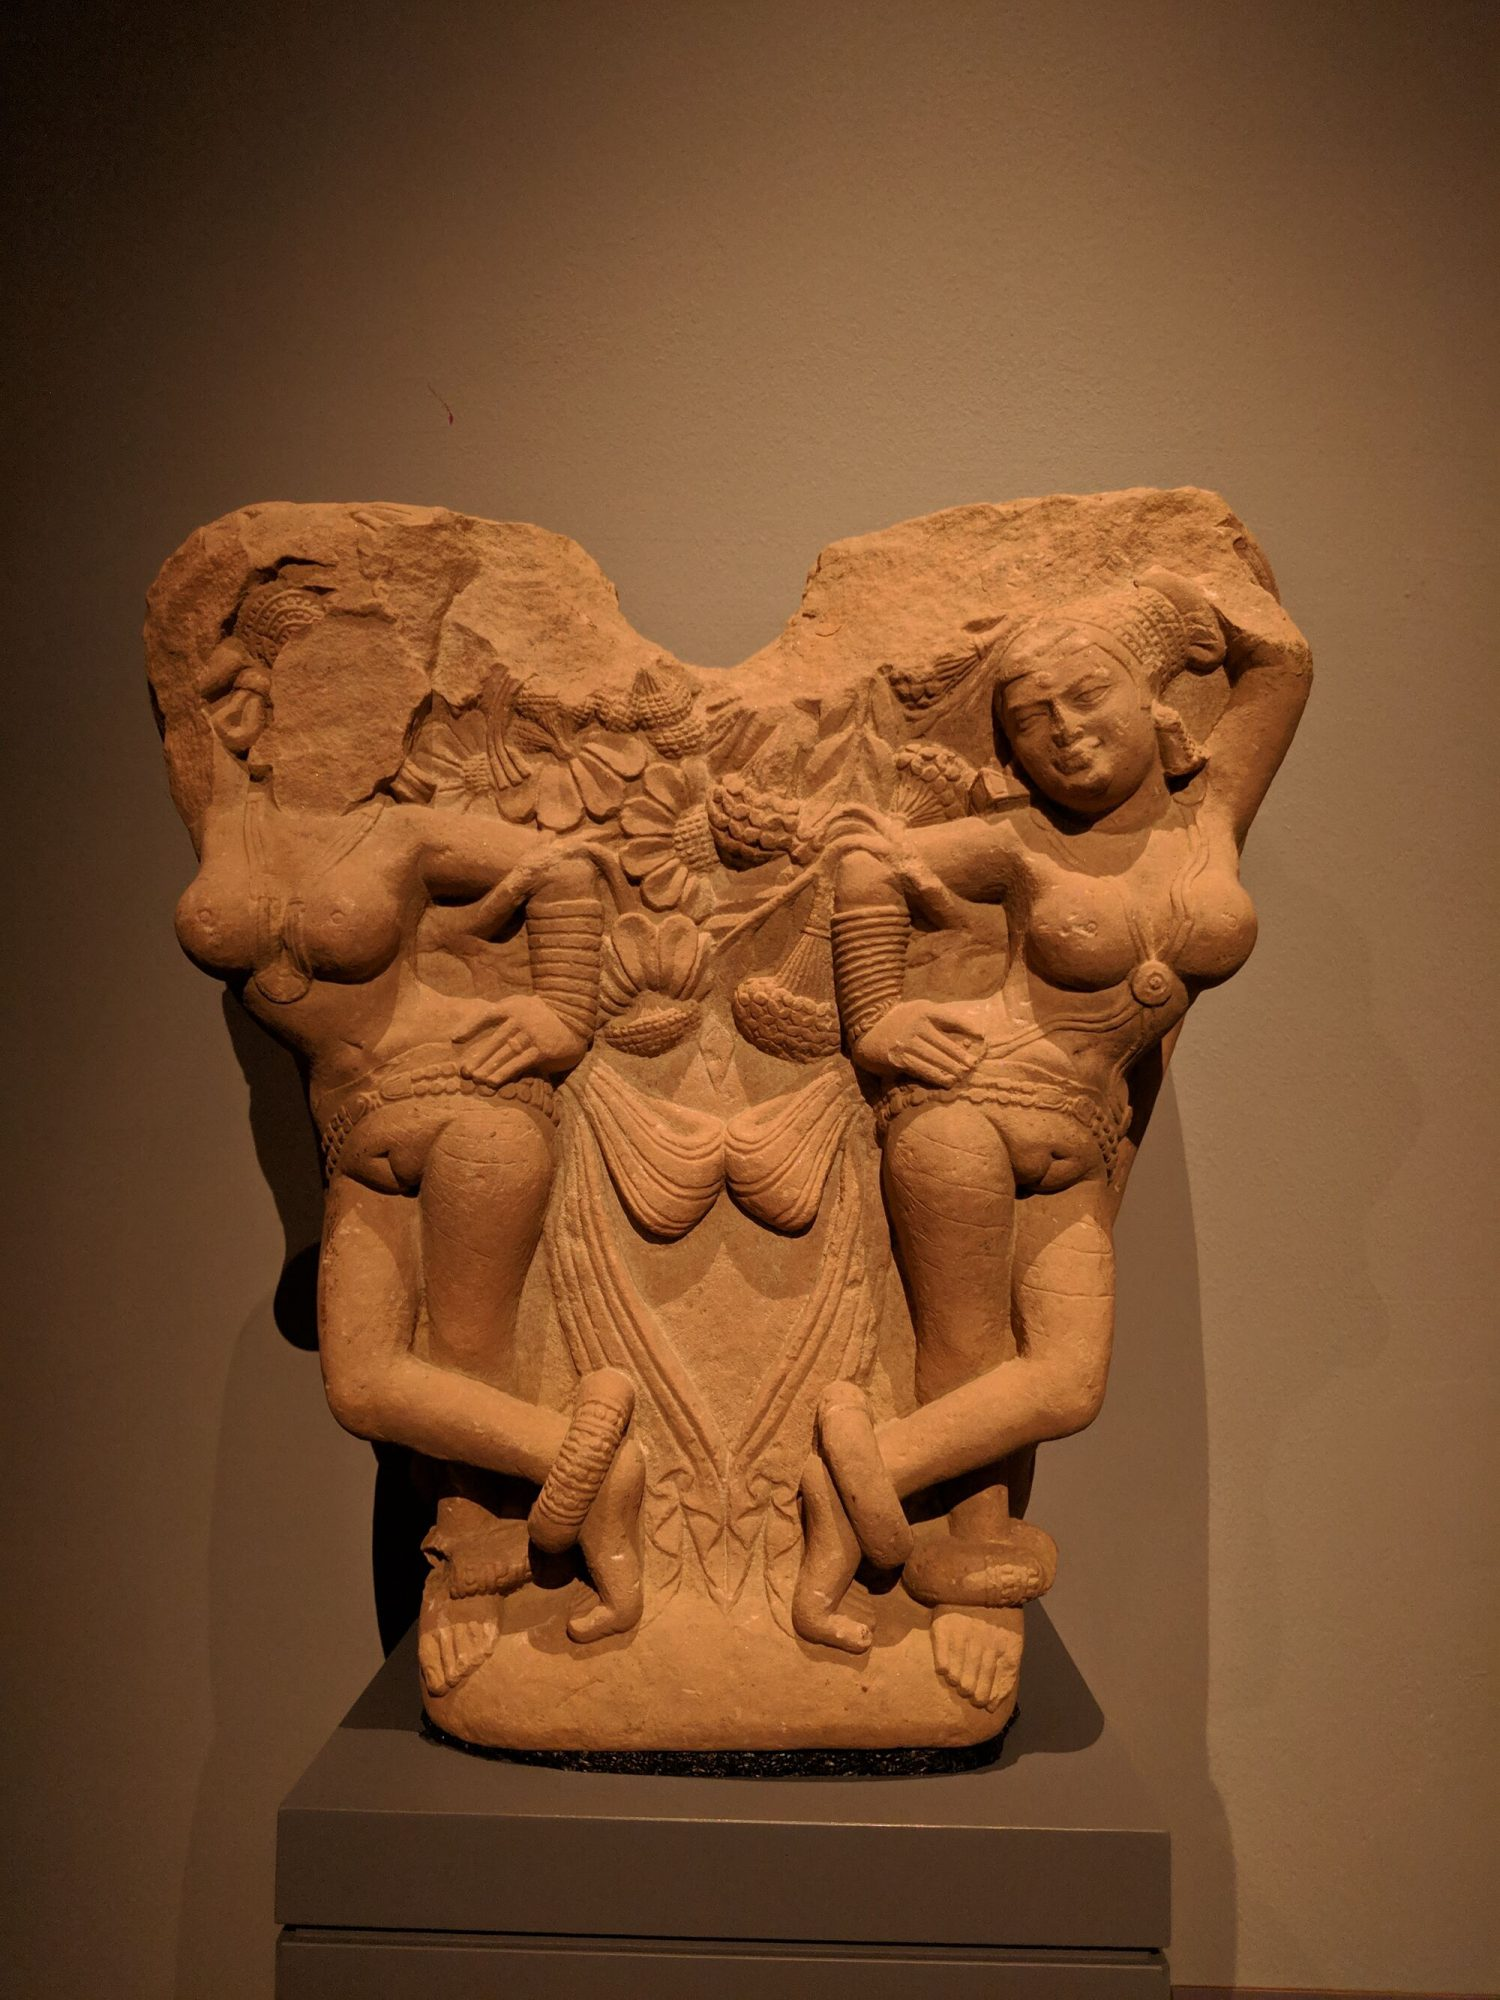 Gateway bracket with four shalabhanjikas, Northwest India, 2nd century, Sandstone, this bracket depicts pairs of young women on either side of a tree. They are female nature spirits and fertility symbols.